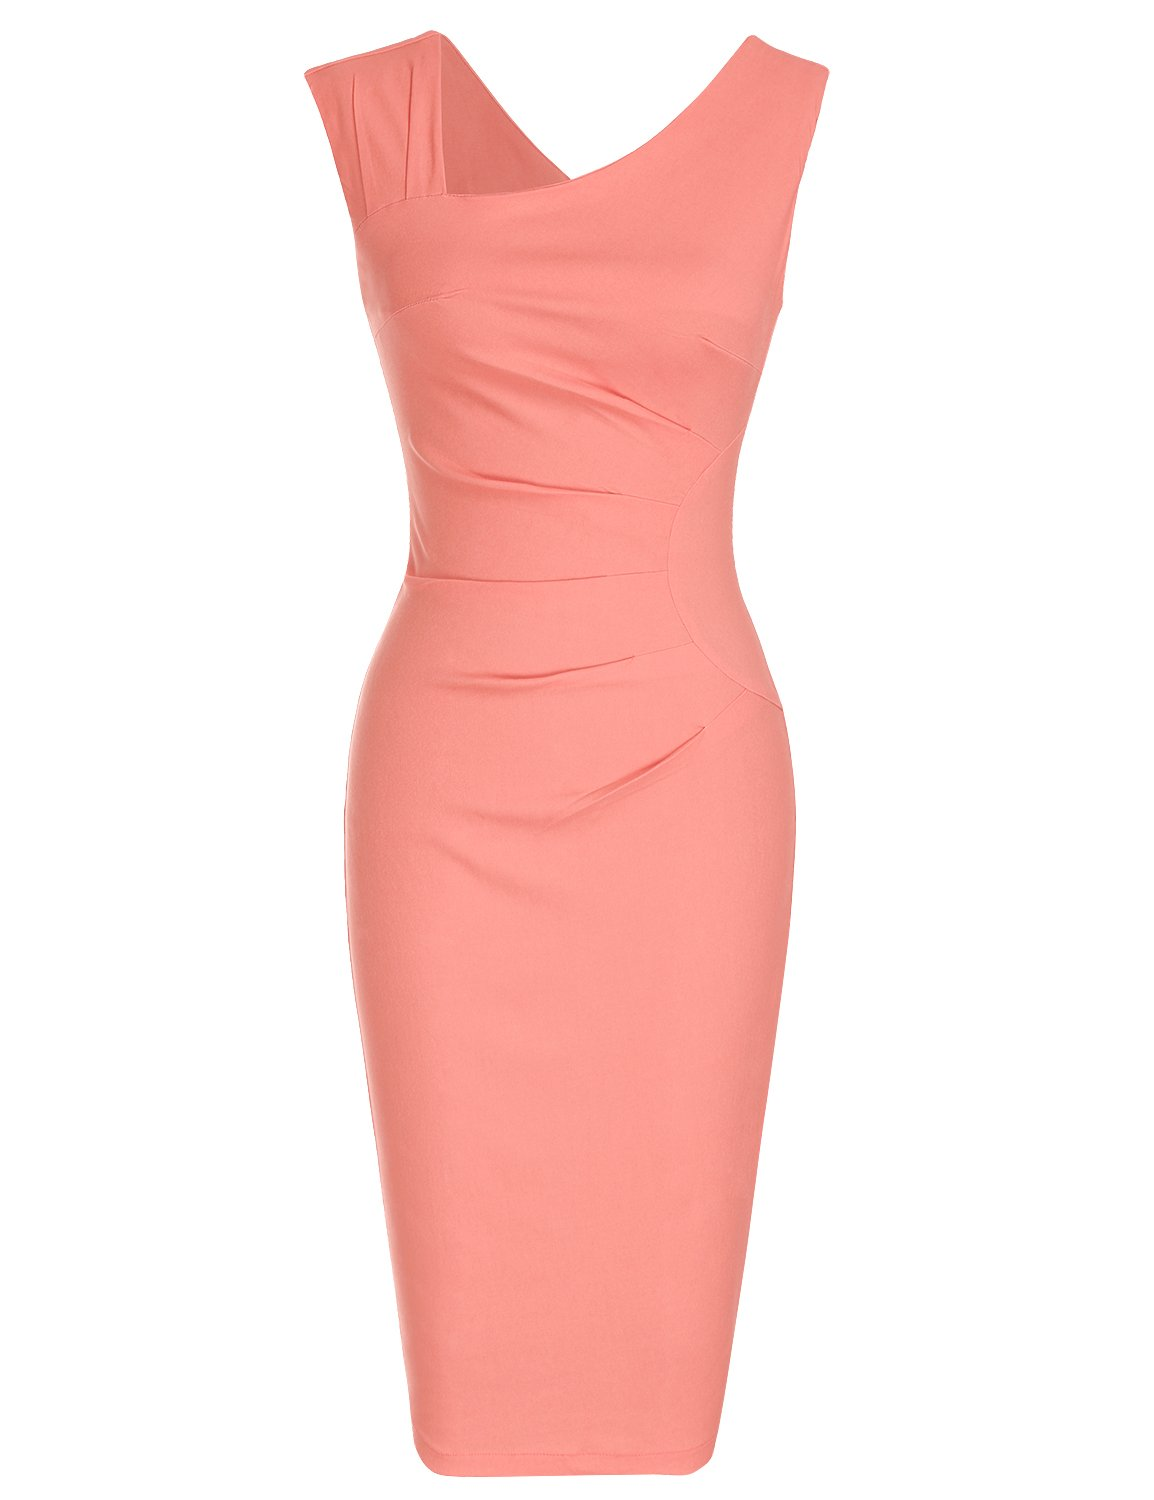 Wedding Guest Dresses - Women's Dresses Sexy Ruffle One Shoulder Sleeveless Split Bodycon Midi Party Dress